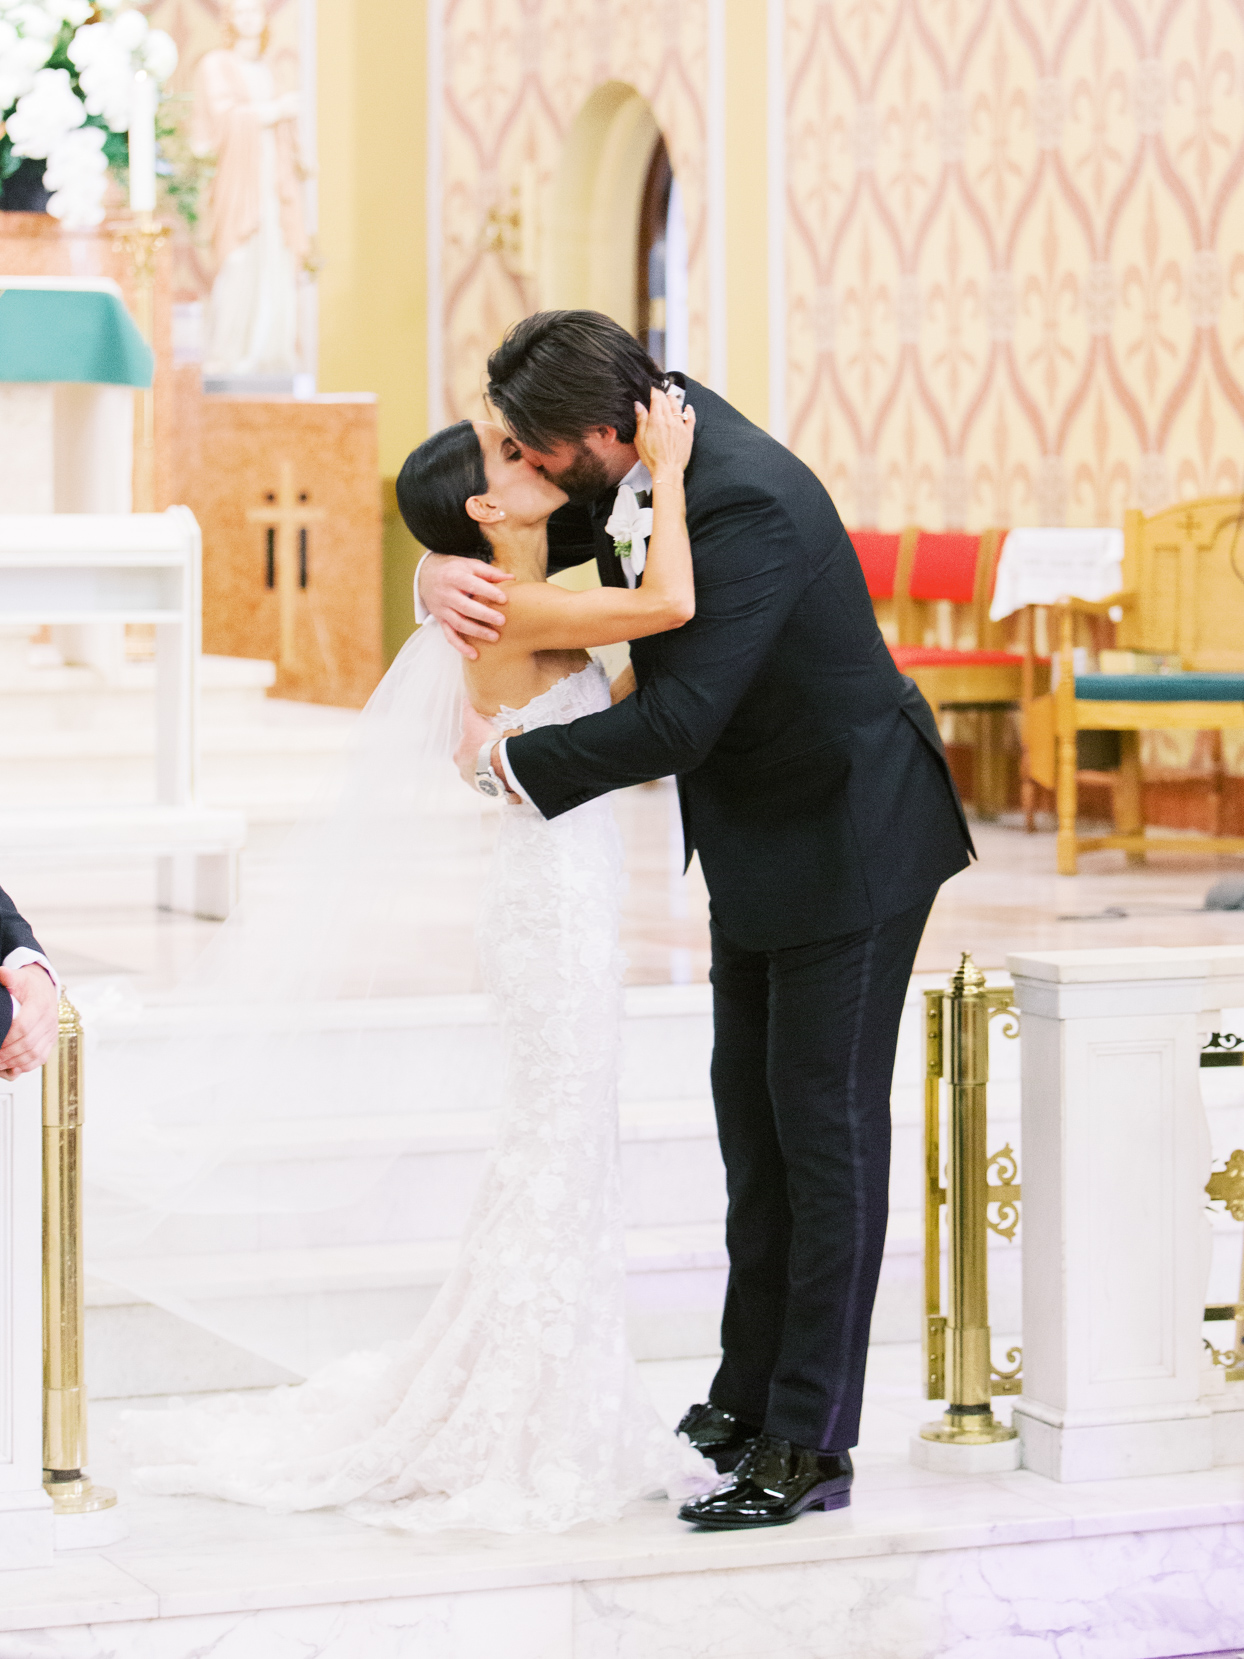 wedding kiss on marble stairs in catholic church